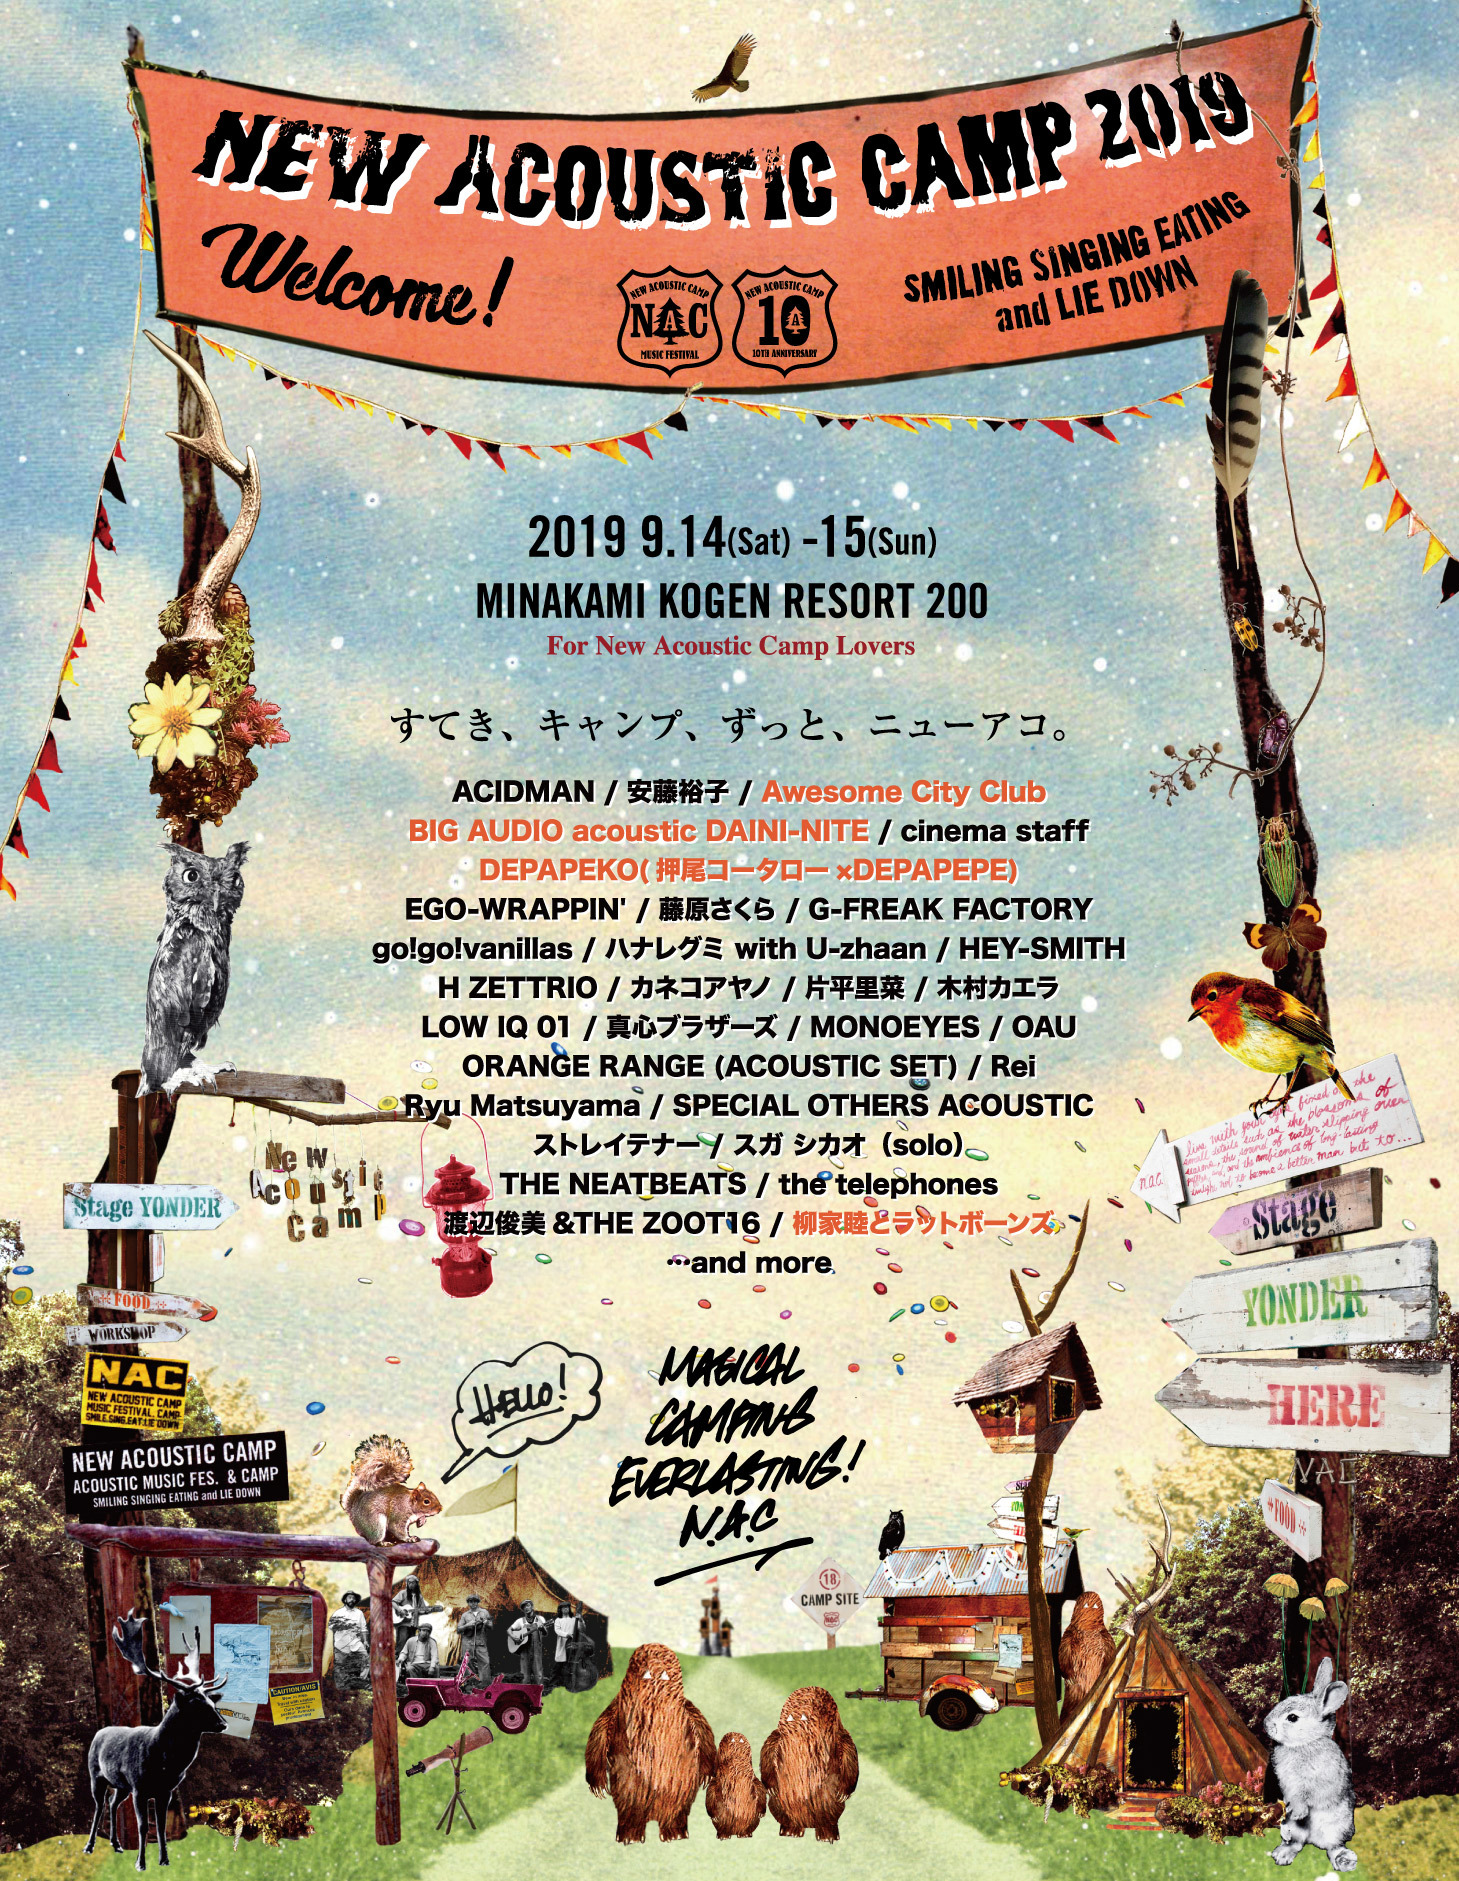 New Acoustic Camp 2019